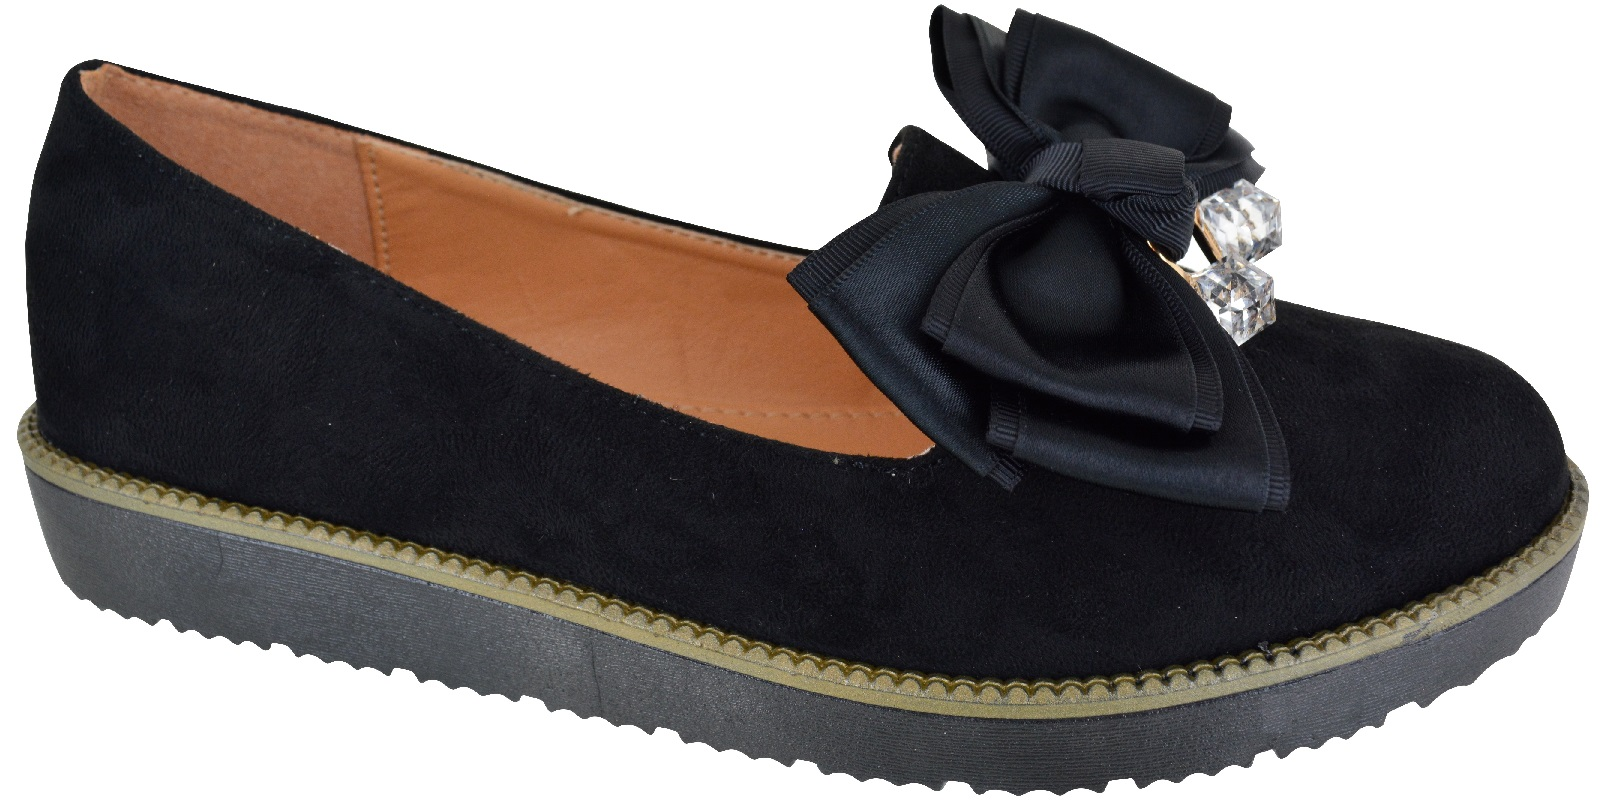 LADIES WOMENS NEW FLAT LOW HEEL CHUNK LOAFERS BOW SCHOOL WORK SHOES SIZE 3-8